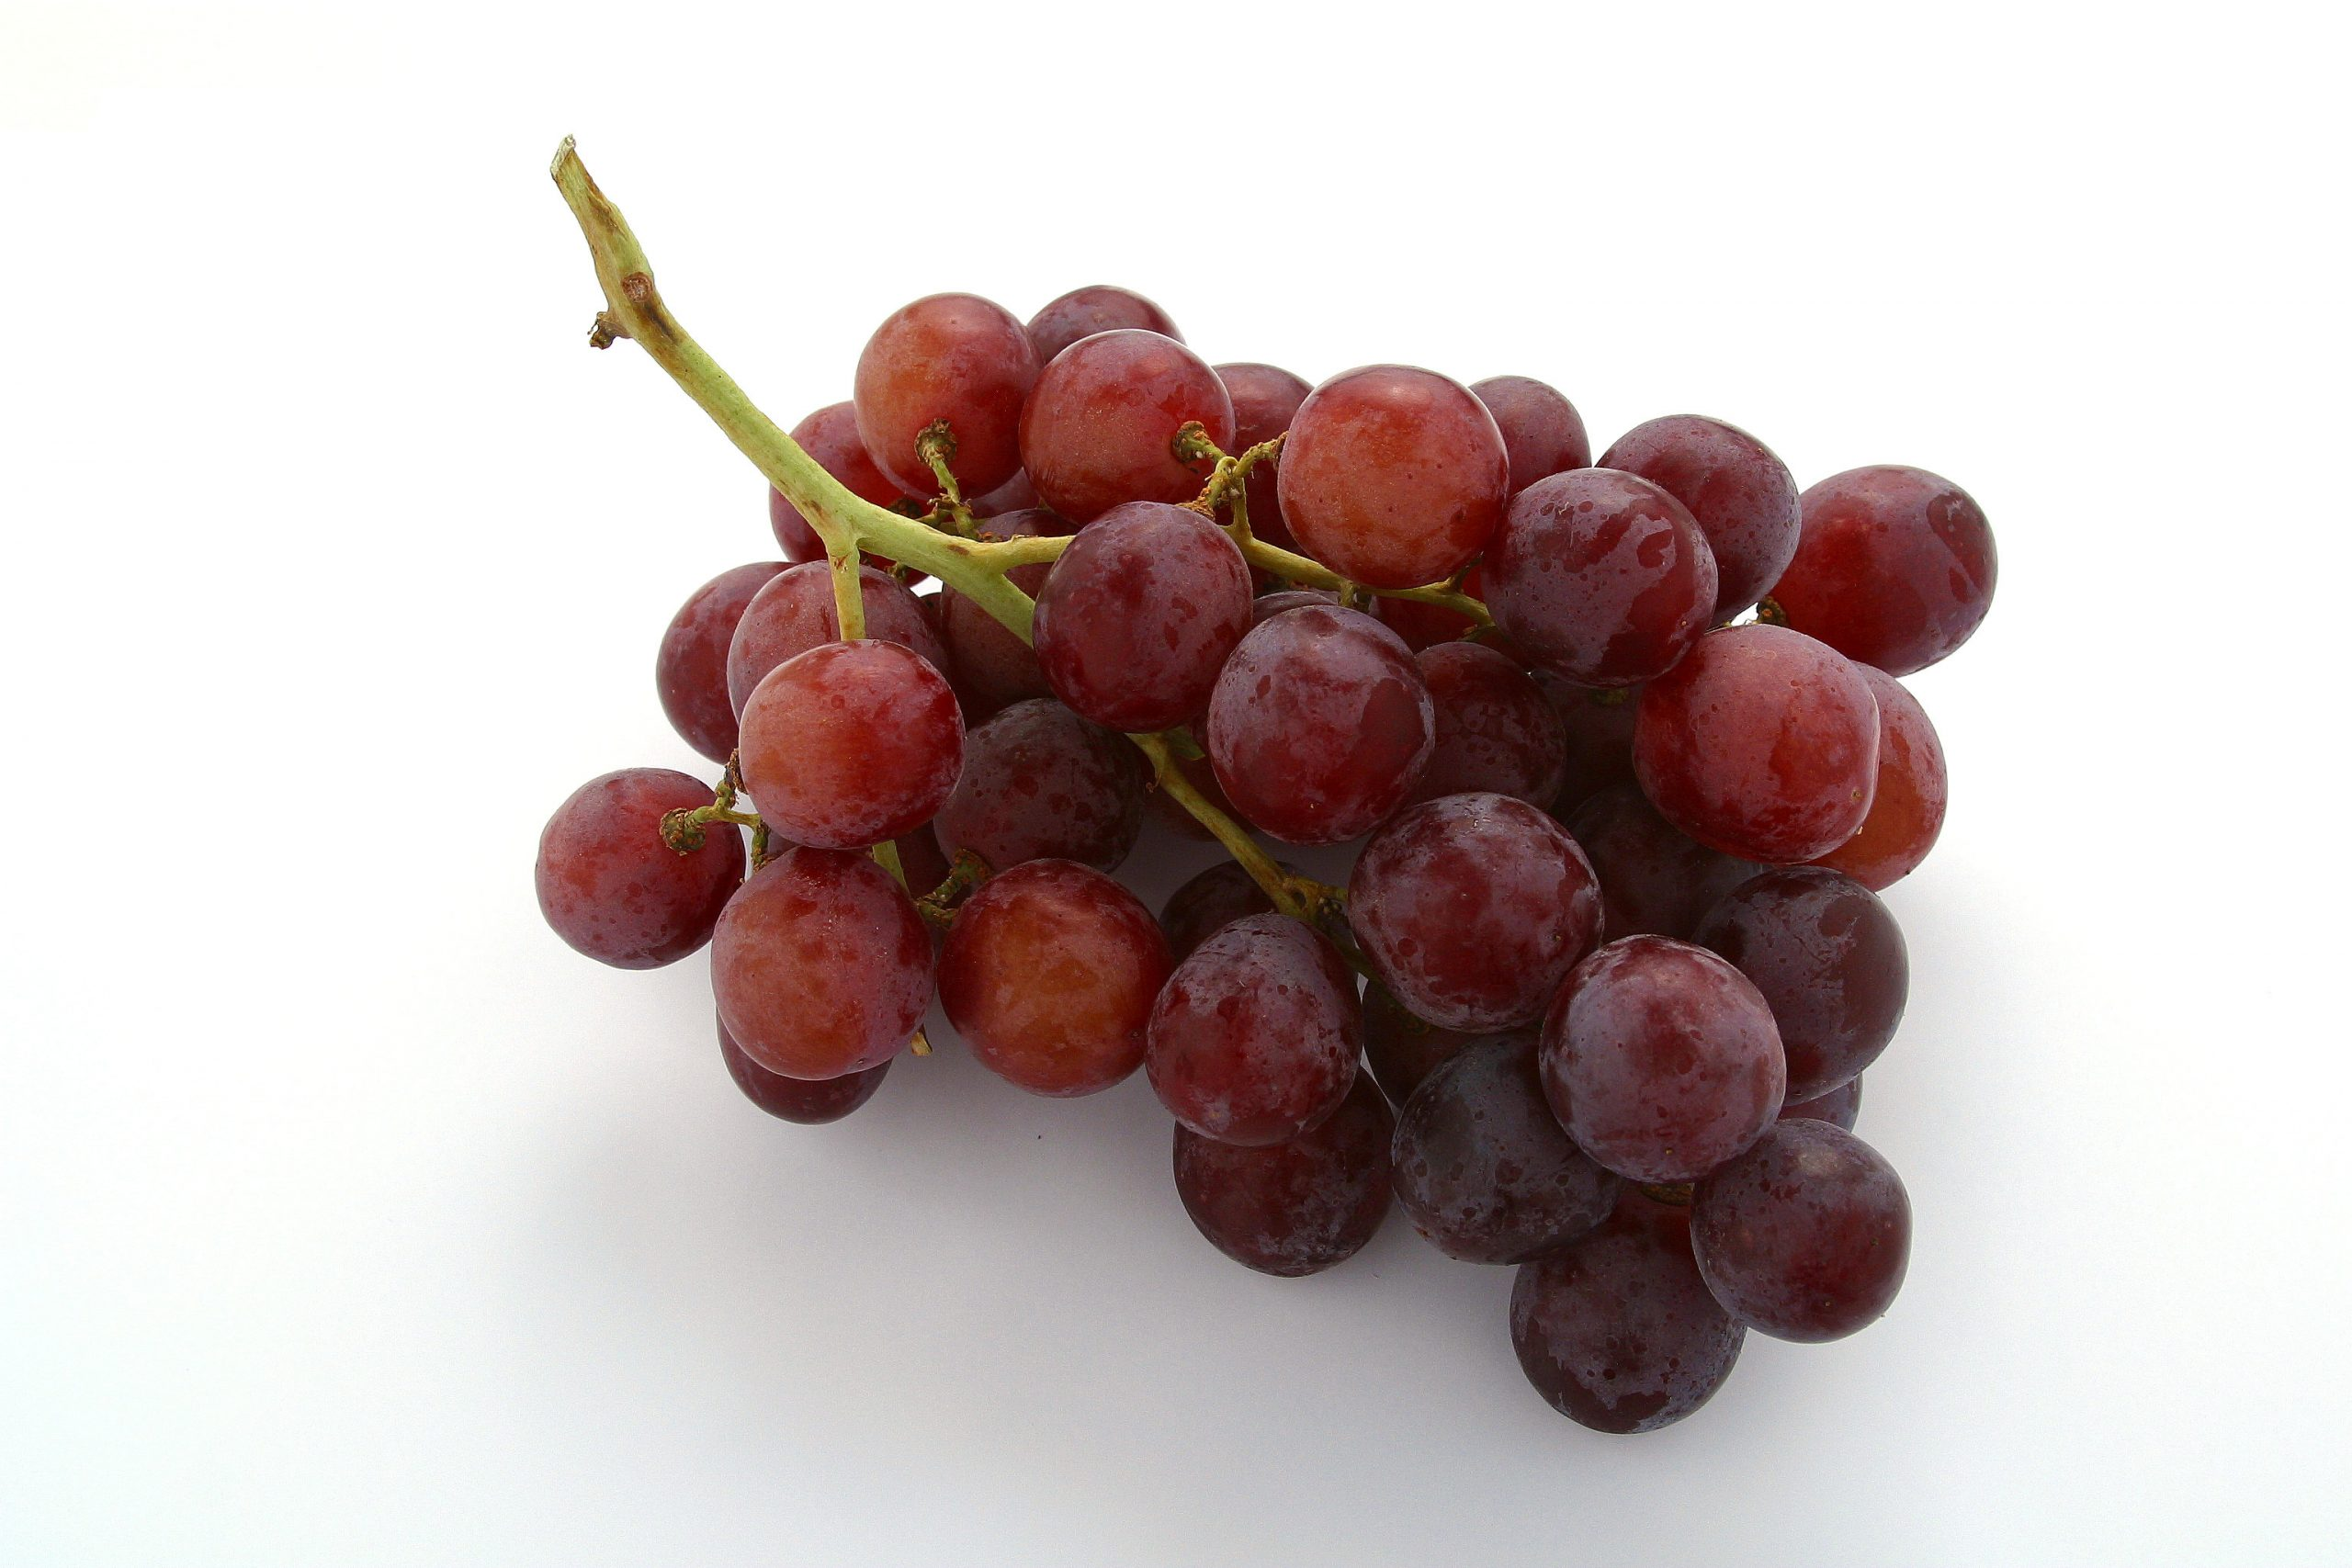 Growers in the Australian Table Grape Association have nearly tripled their exports to China since 2014, with the volume rising from 7,000 tons to 20,000 tons.